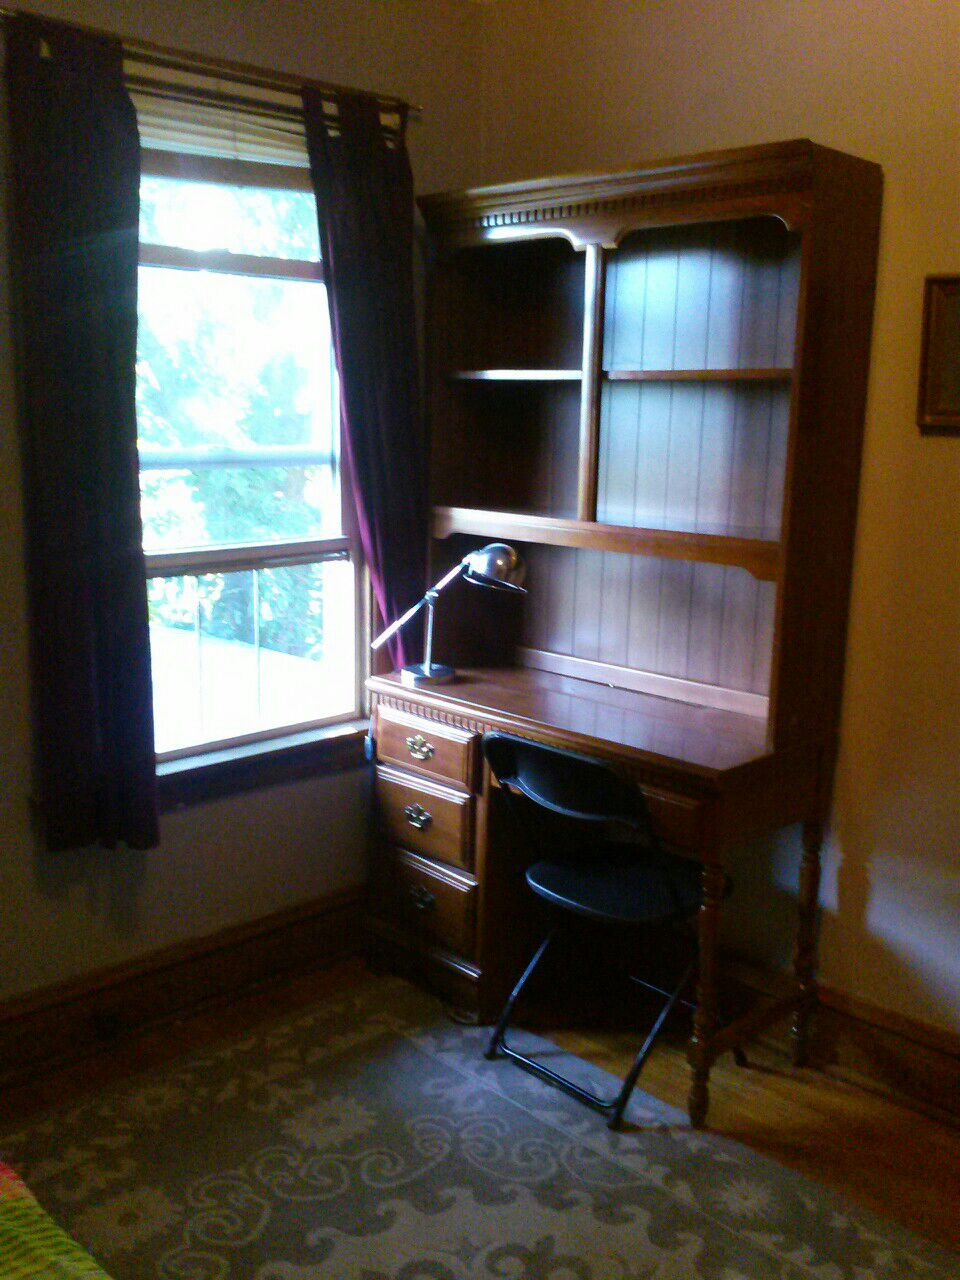 Desk with bookcase. Photo updated June 26, 2014